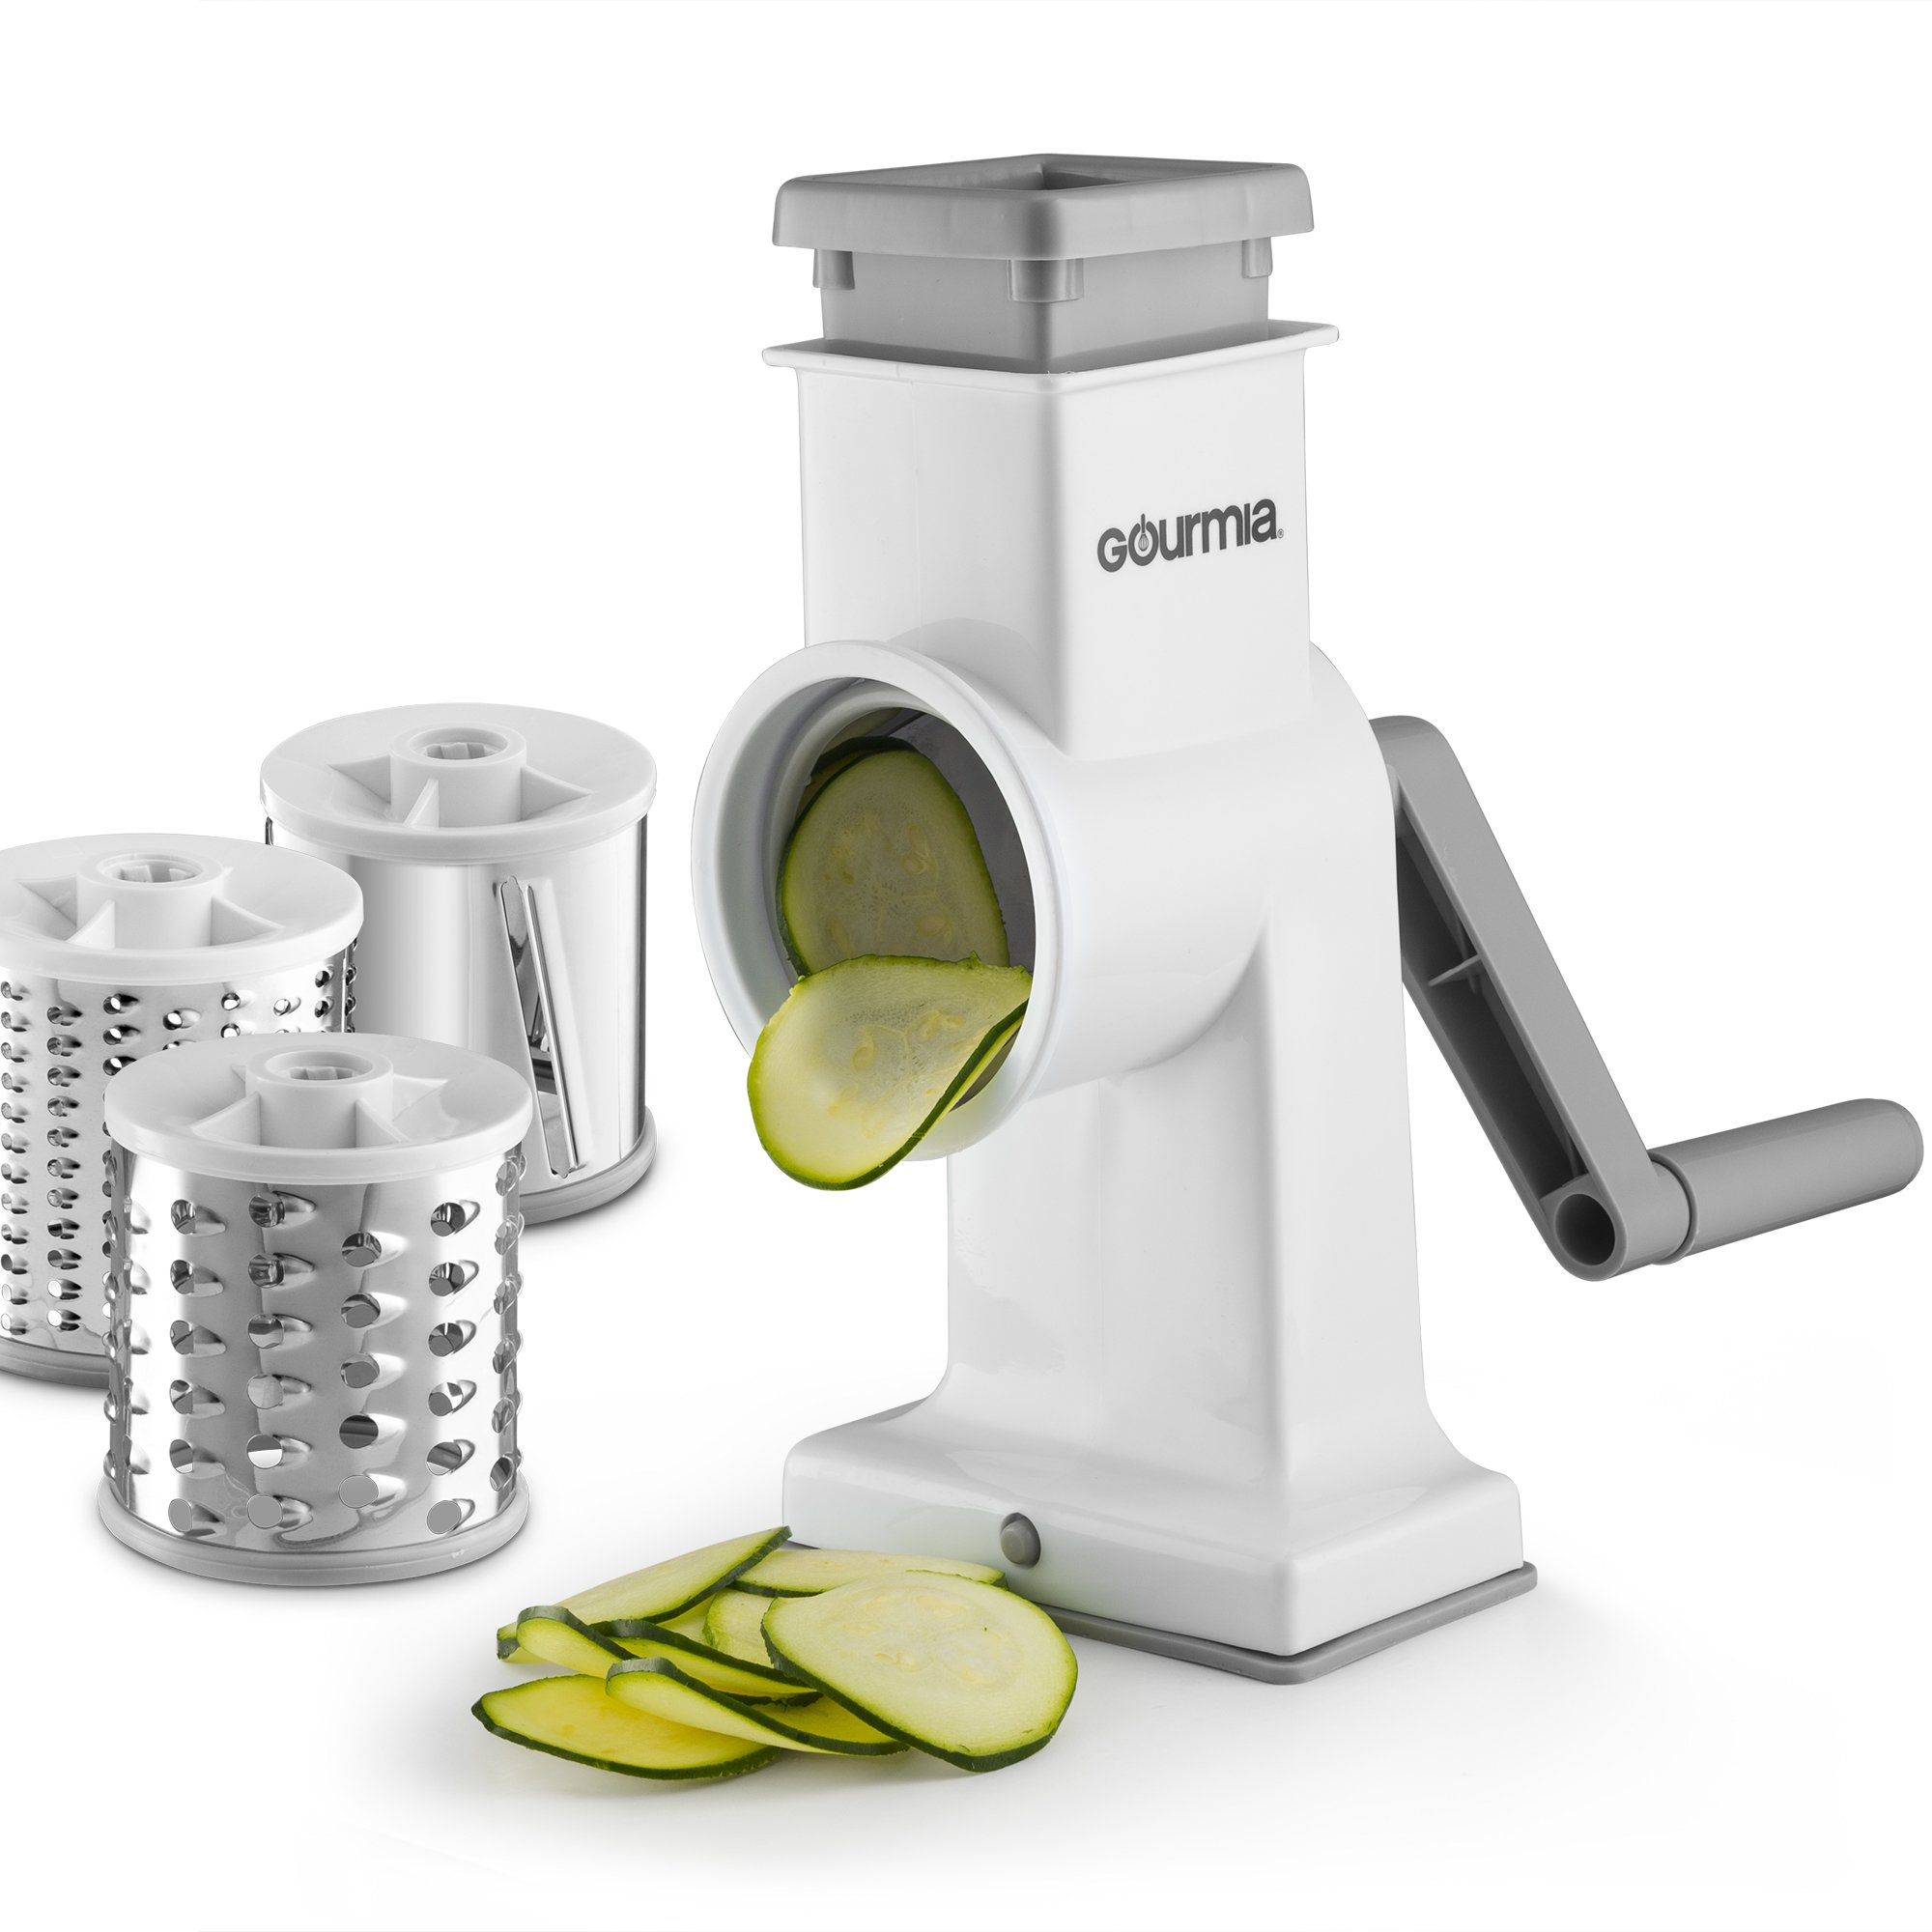 ingenious of kitchen have to pin your you cleaning way cheese this grater try